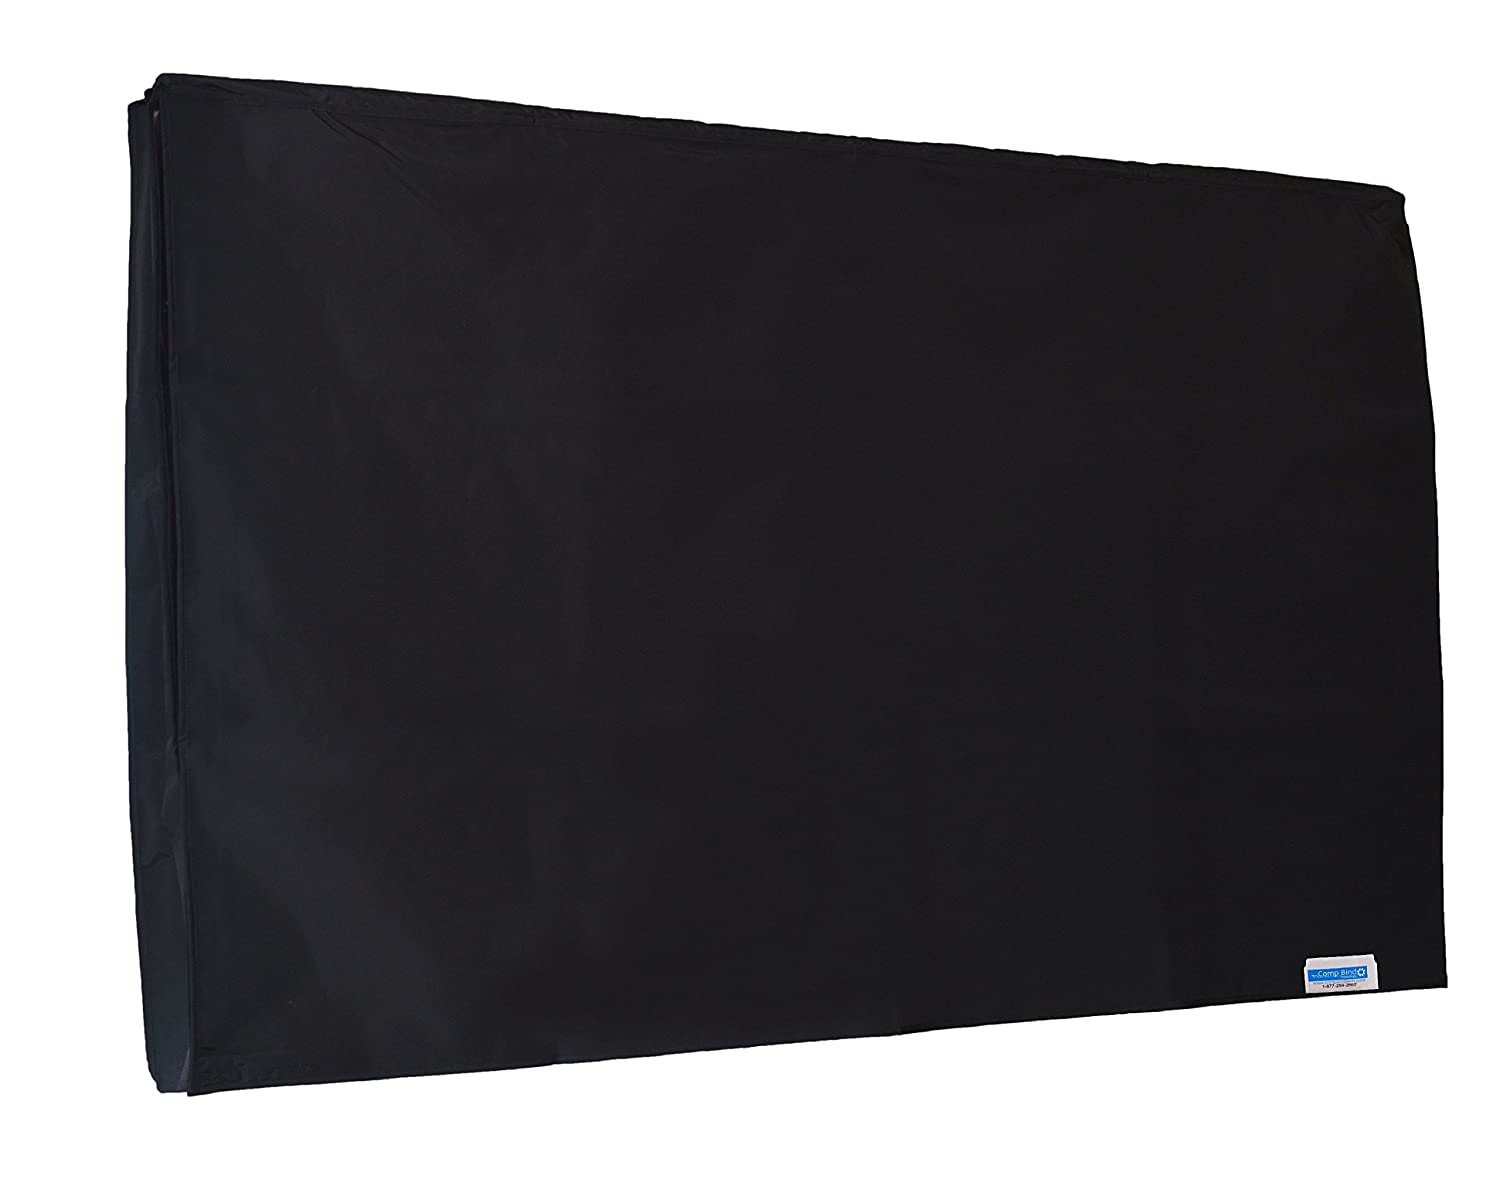 Sunbrite SB-4374UHD 43'' HDTV OUTDOOR Waterproof Black Cover, FITS TV WITH WALL MOUNT, Heavy Duty Material , Maximize TV Life By Comp Bind Technology - 39''W x 4''D x 23.5''H Comp-Bind Technology CB3063